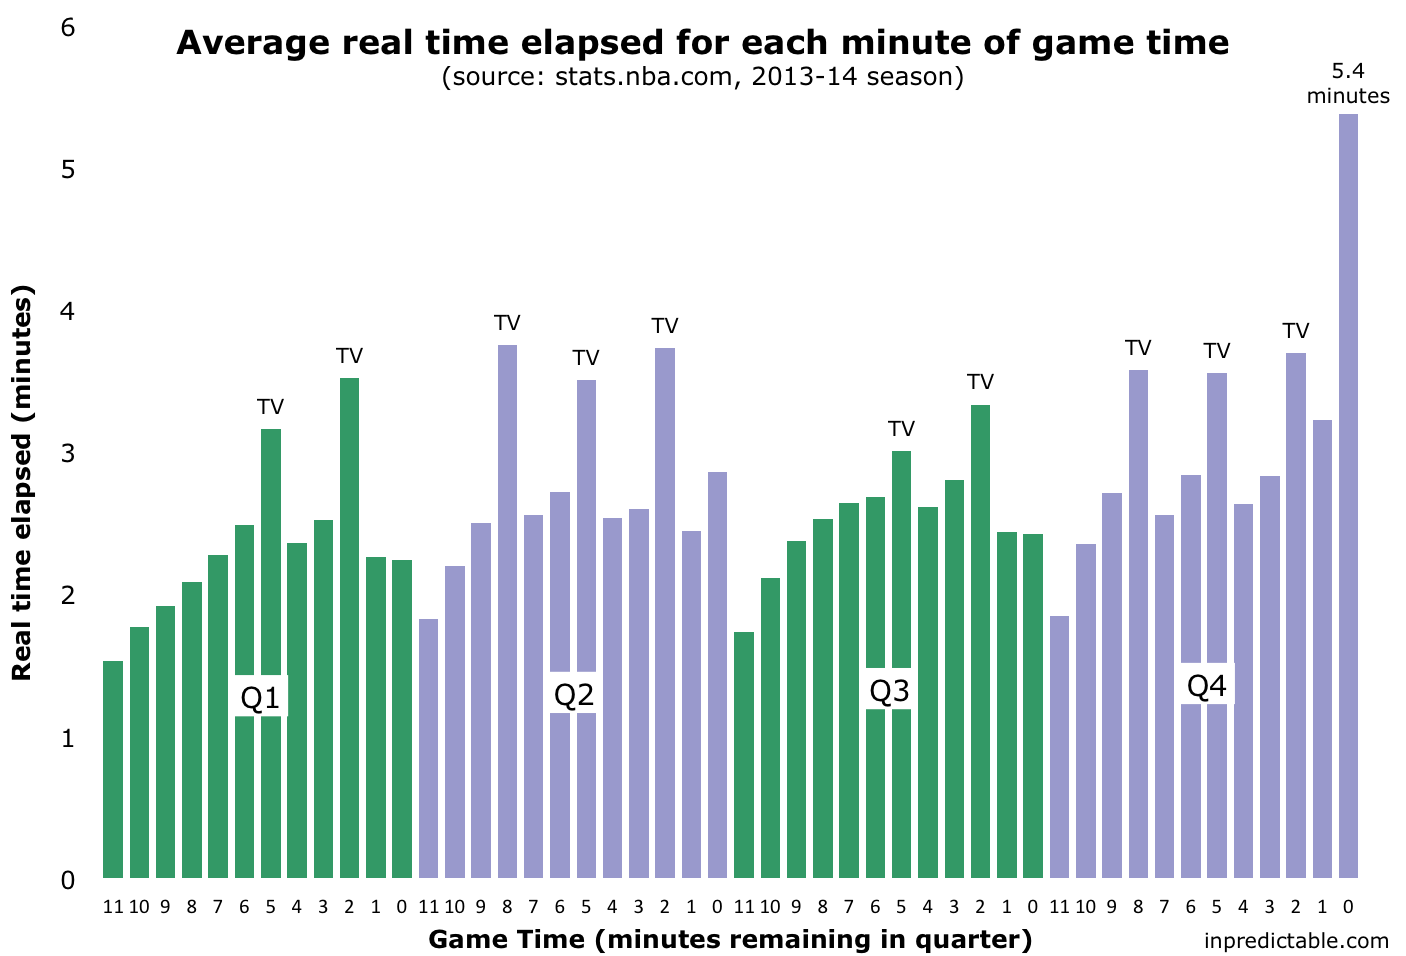 inpredictable: How long is each minute of NBA gametime?